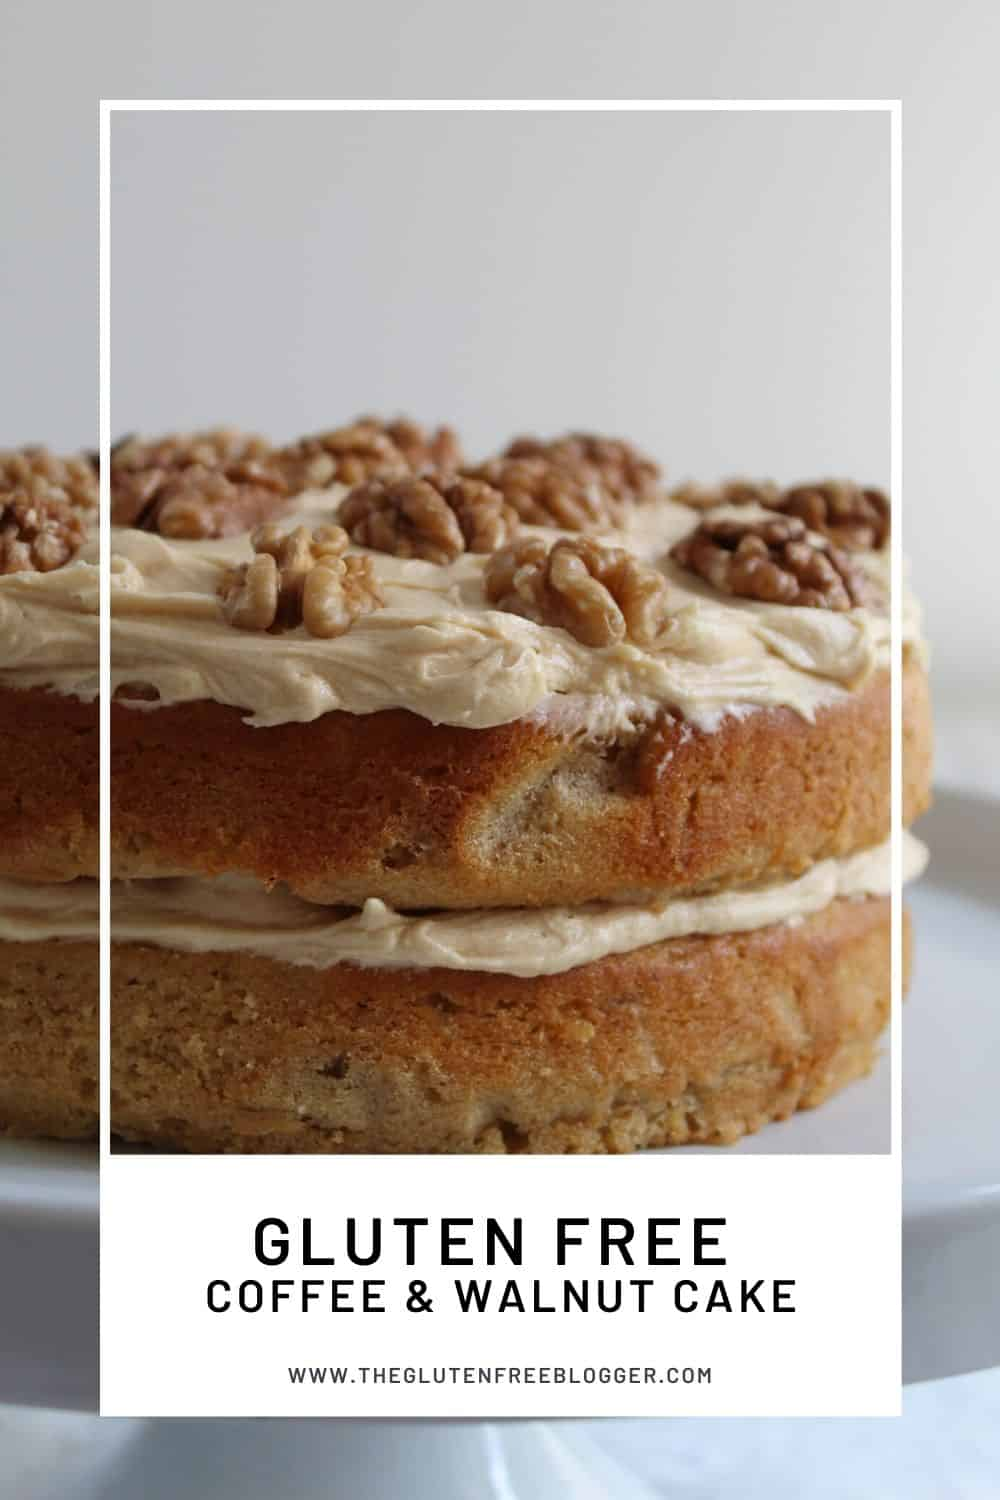 gluten free coffee and walnut cake recipe baking coeliac